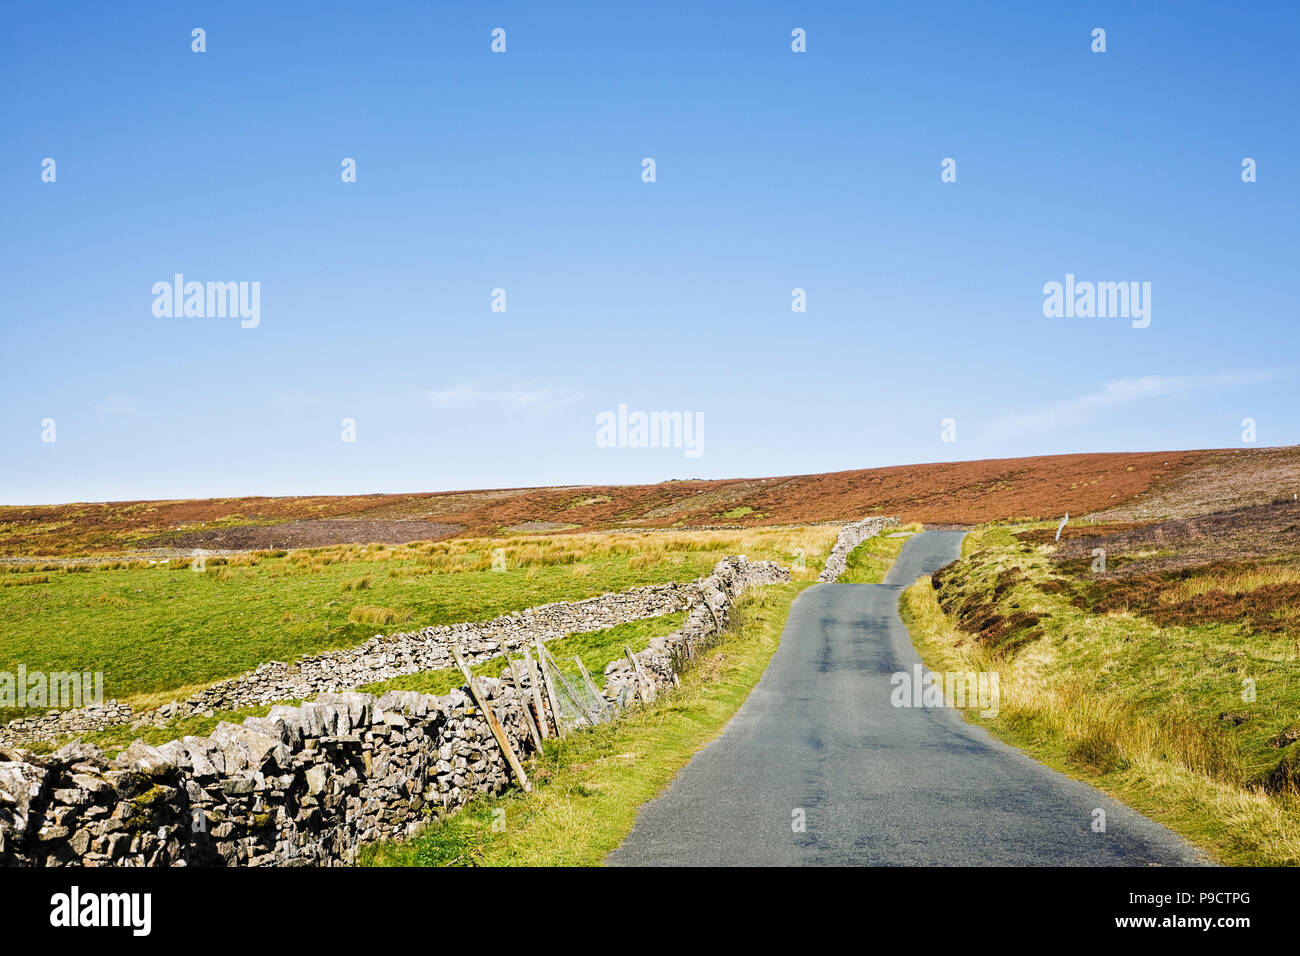 Small tarmac country road in the Yorkshire Dales National Park, England, UK - Stock Image